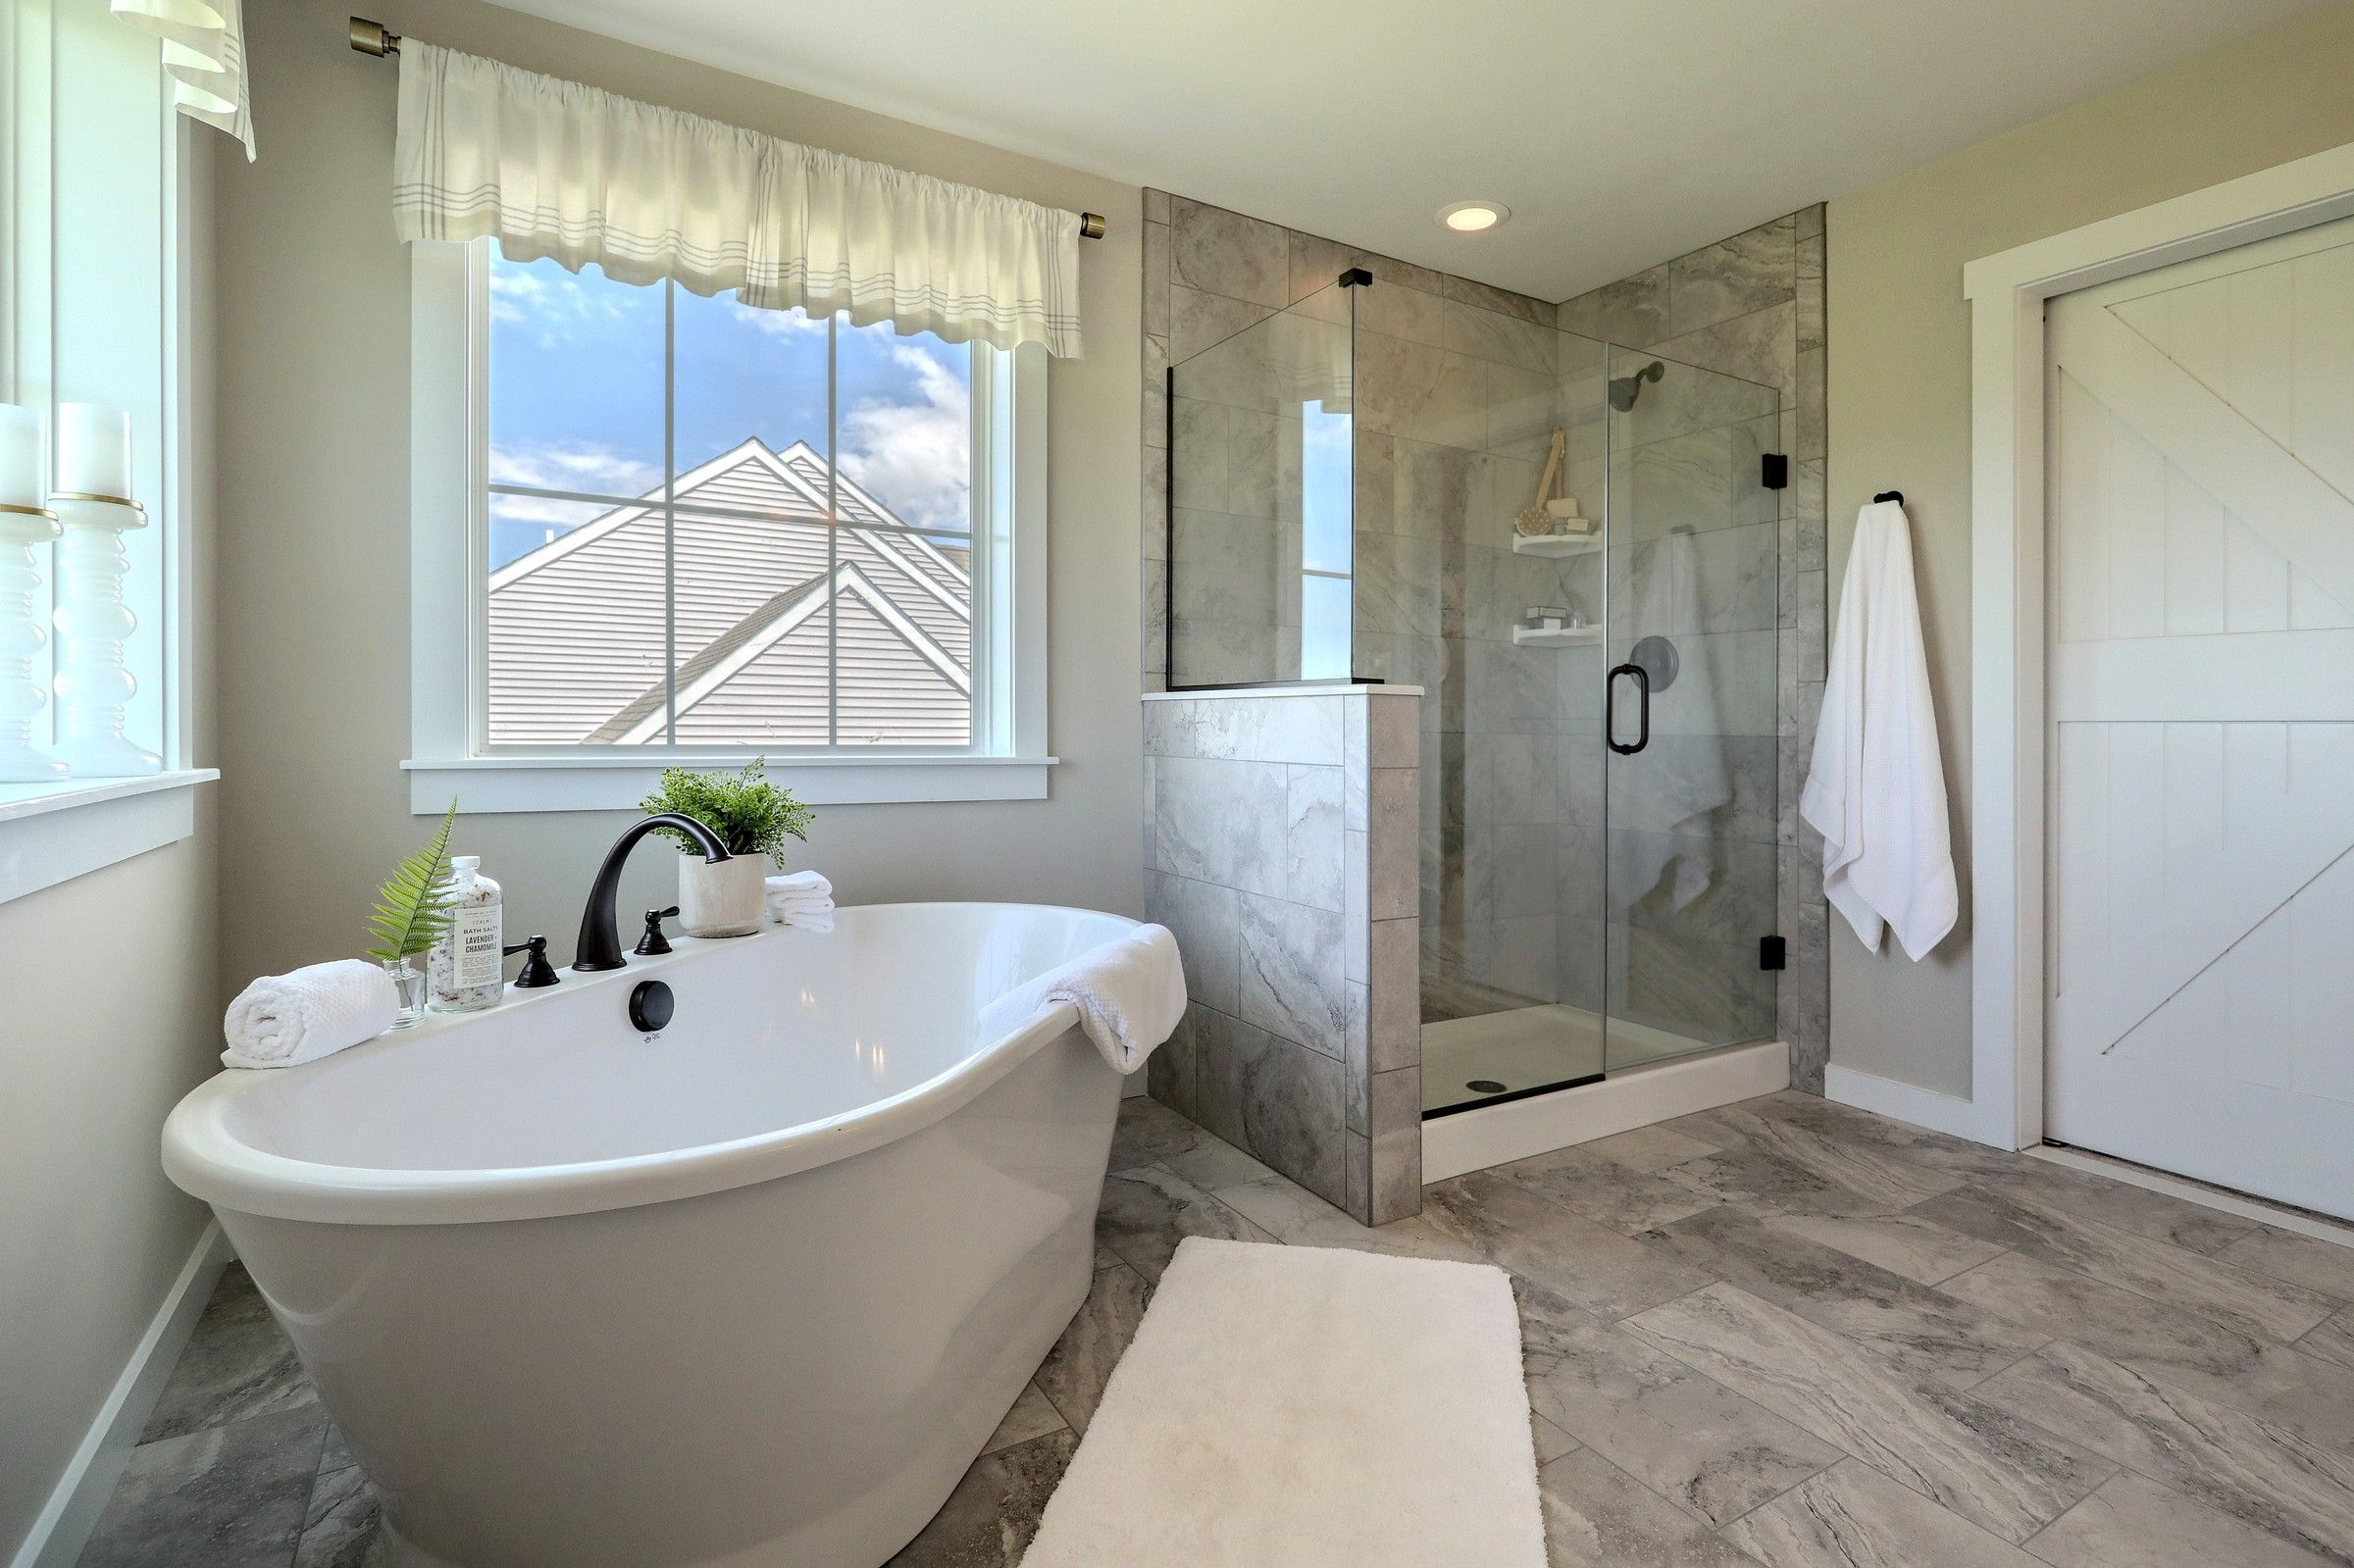 Bathroom featured in the Parker Traditional By Keystone Custom Homes in York, PA